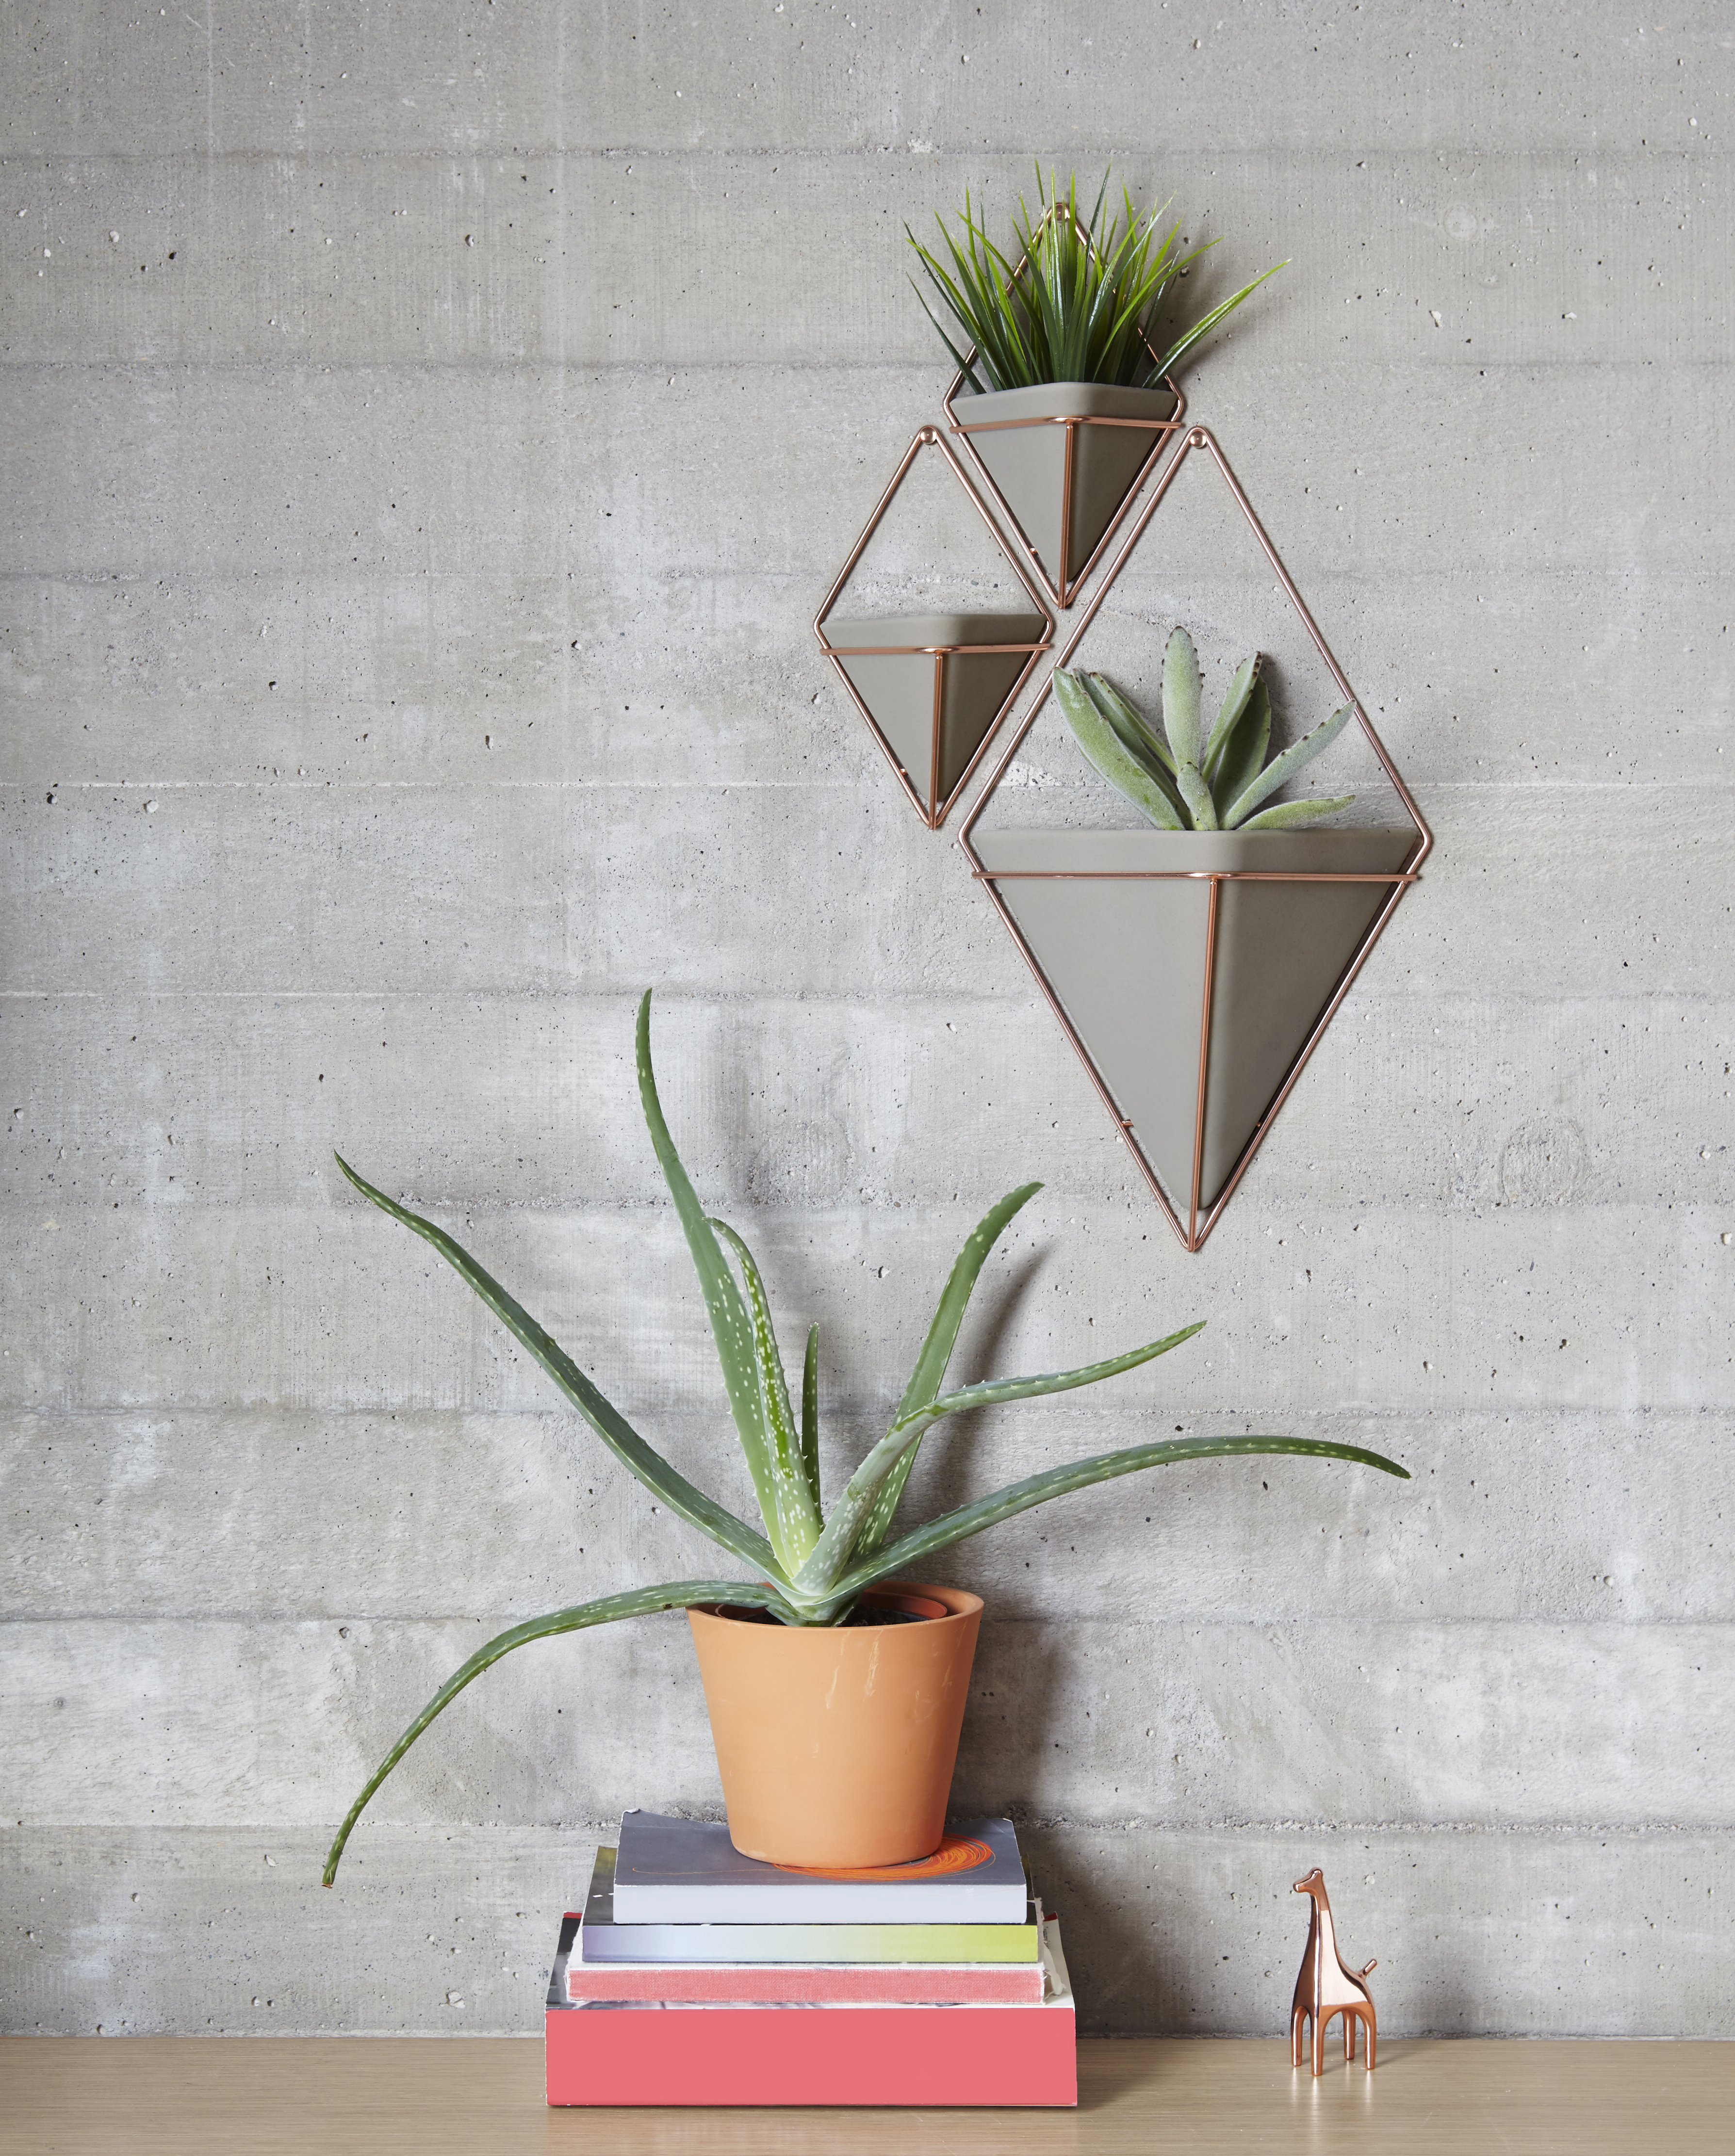 2 Piece Trigg Wall Decor Sets (Set Of 2) Throughout Latest Umbra Trigg Hanging Planter Vase & Geometric Wall Decor Container (Gallery 7 of 20)